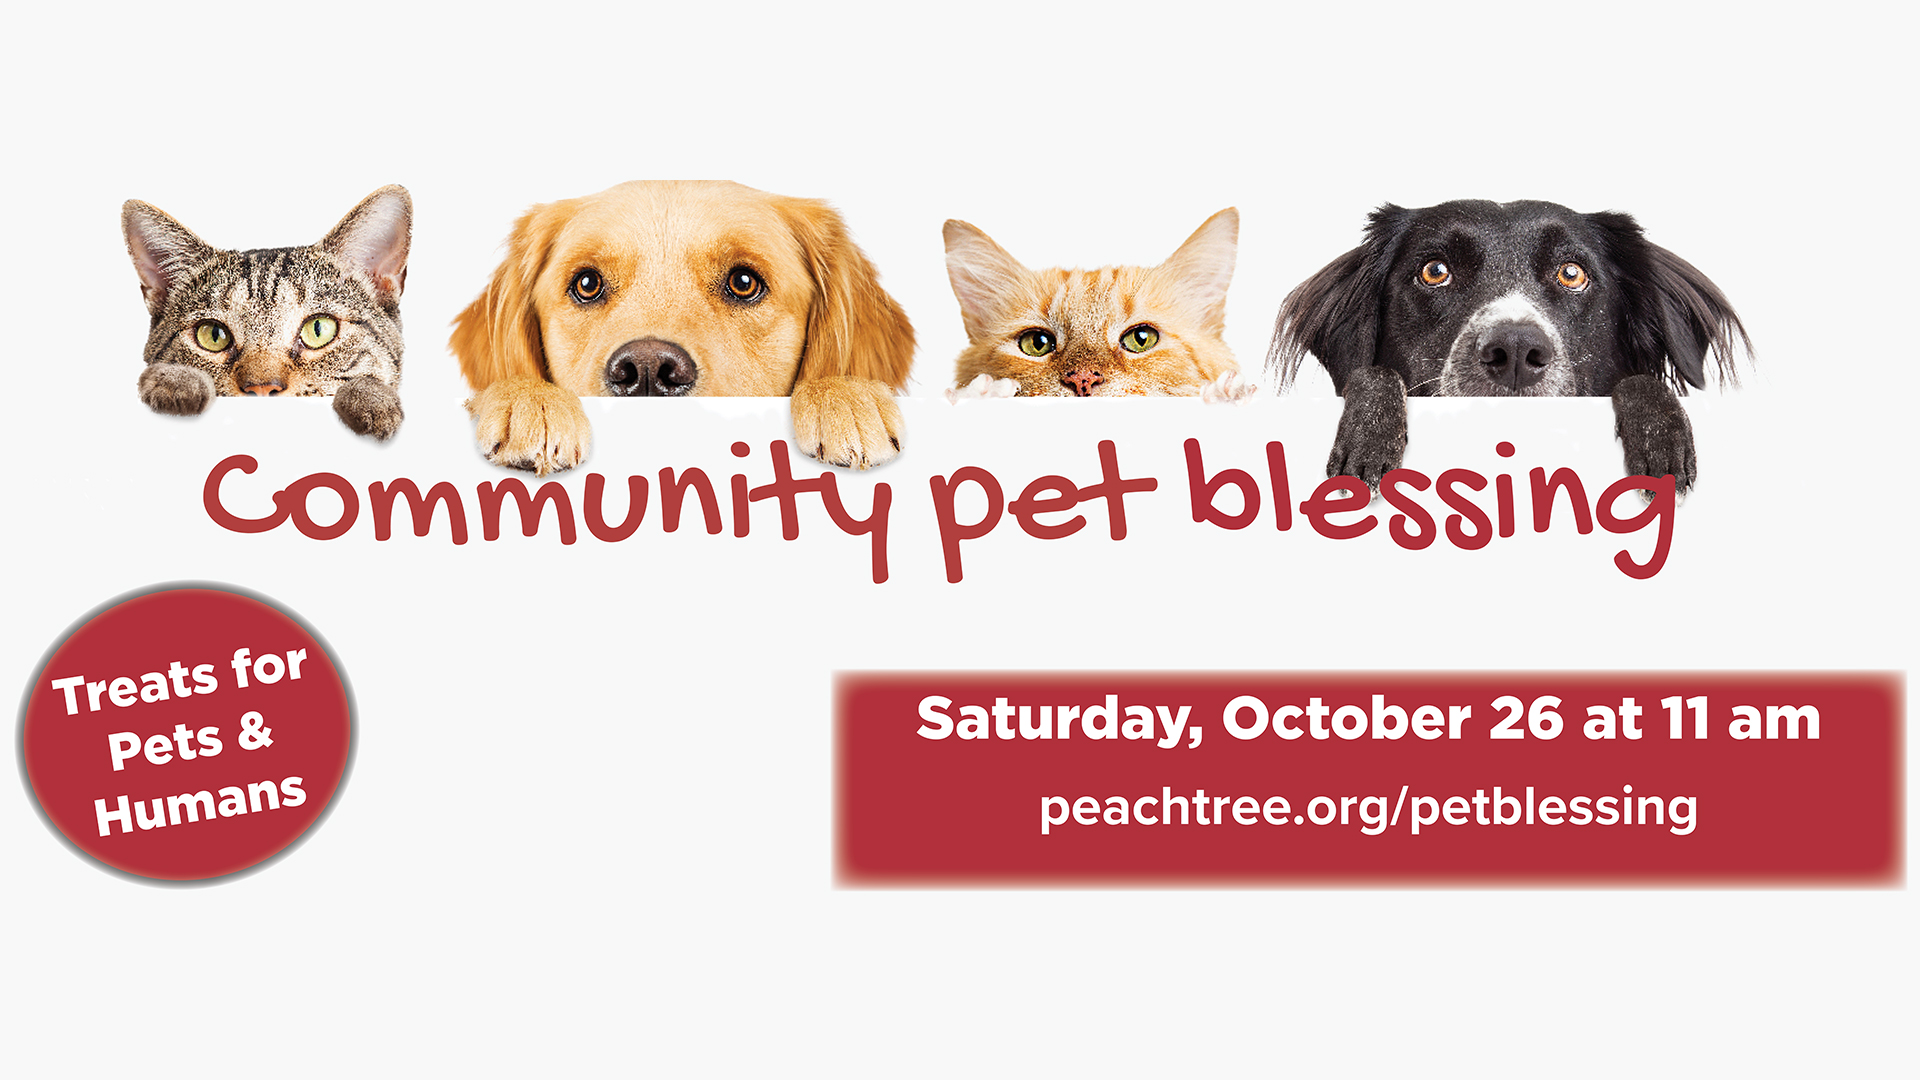 Join us as we bless your pets both big and small! St. Francis of Assisi, the patron saint of animals and ecology, had a deep and profound love for all of God's creation. In this same spirit we will celebrate the connection and love we share with our pets during our annual Pet Blessing.